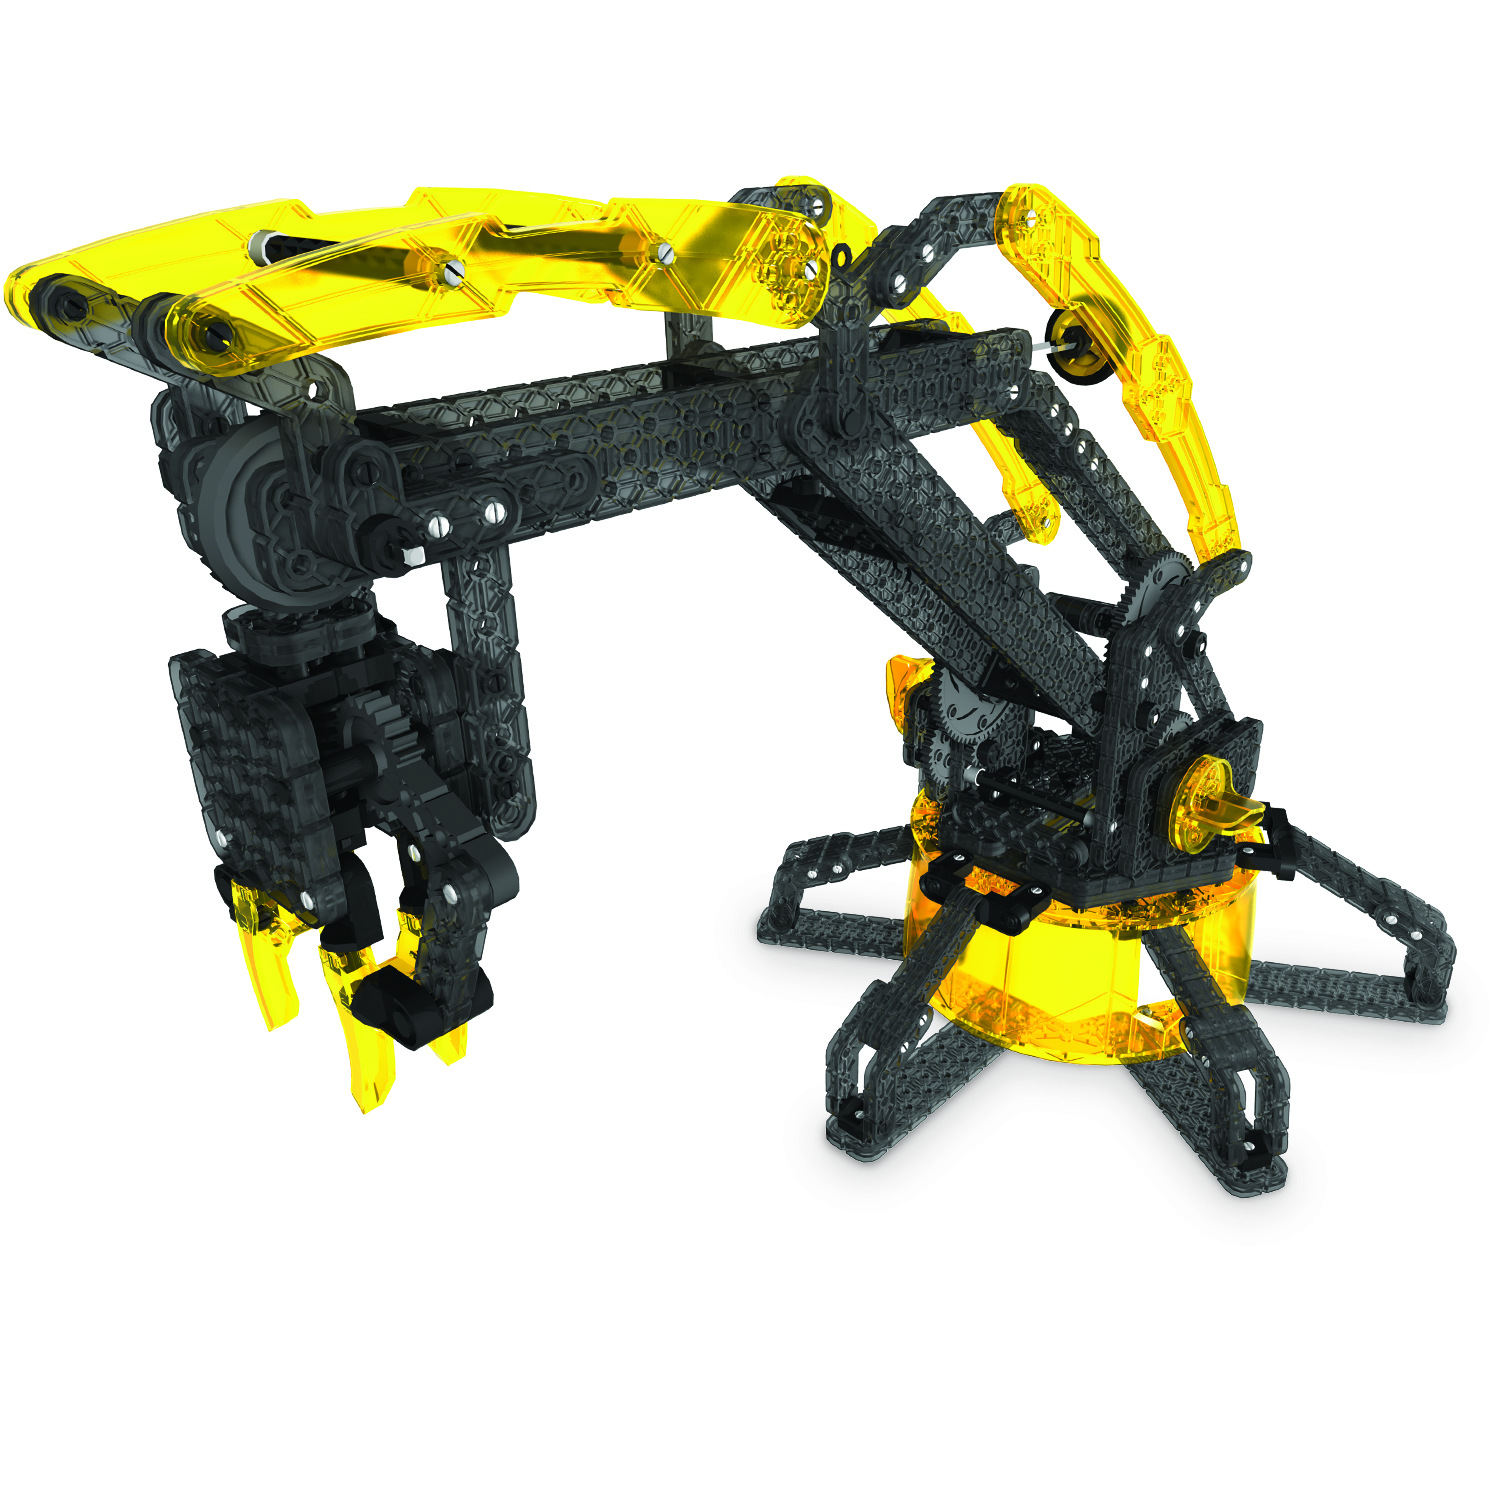 Hexbug VEX Robotics STEM based toy